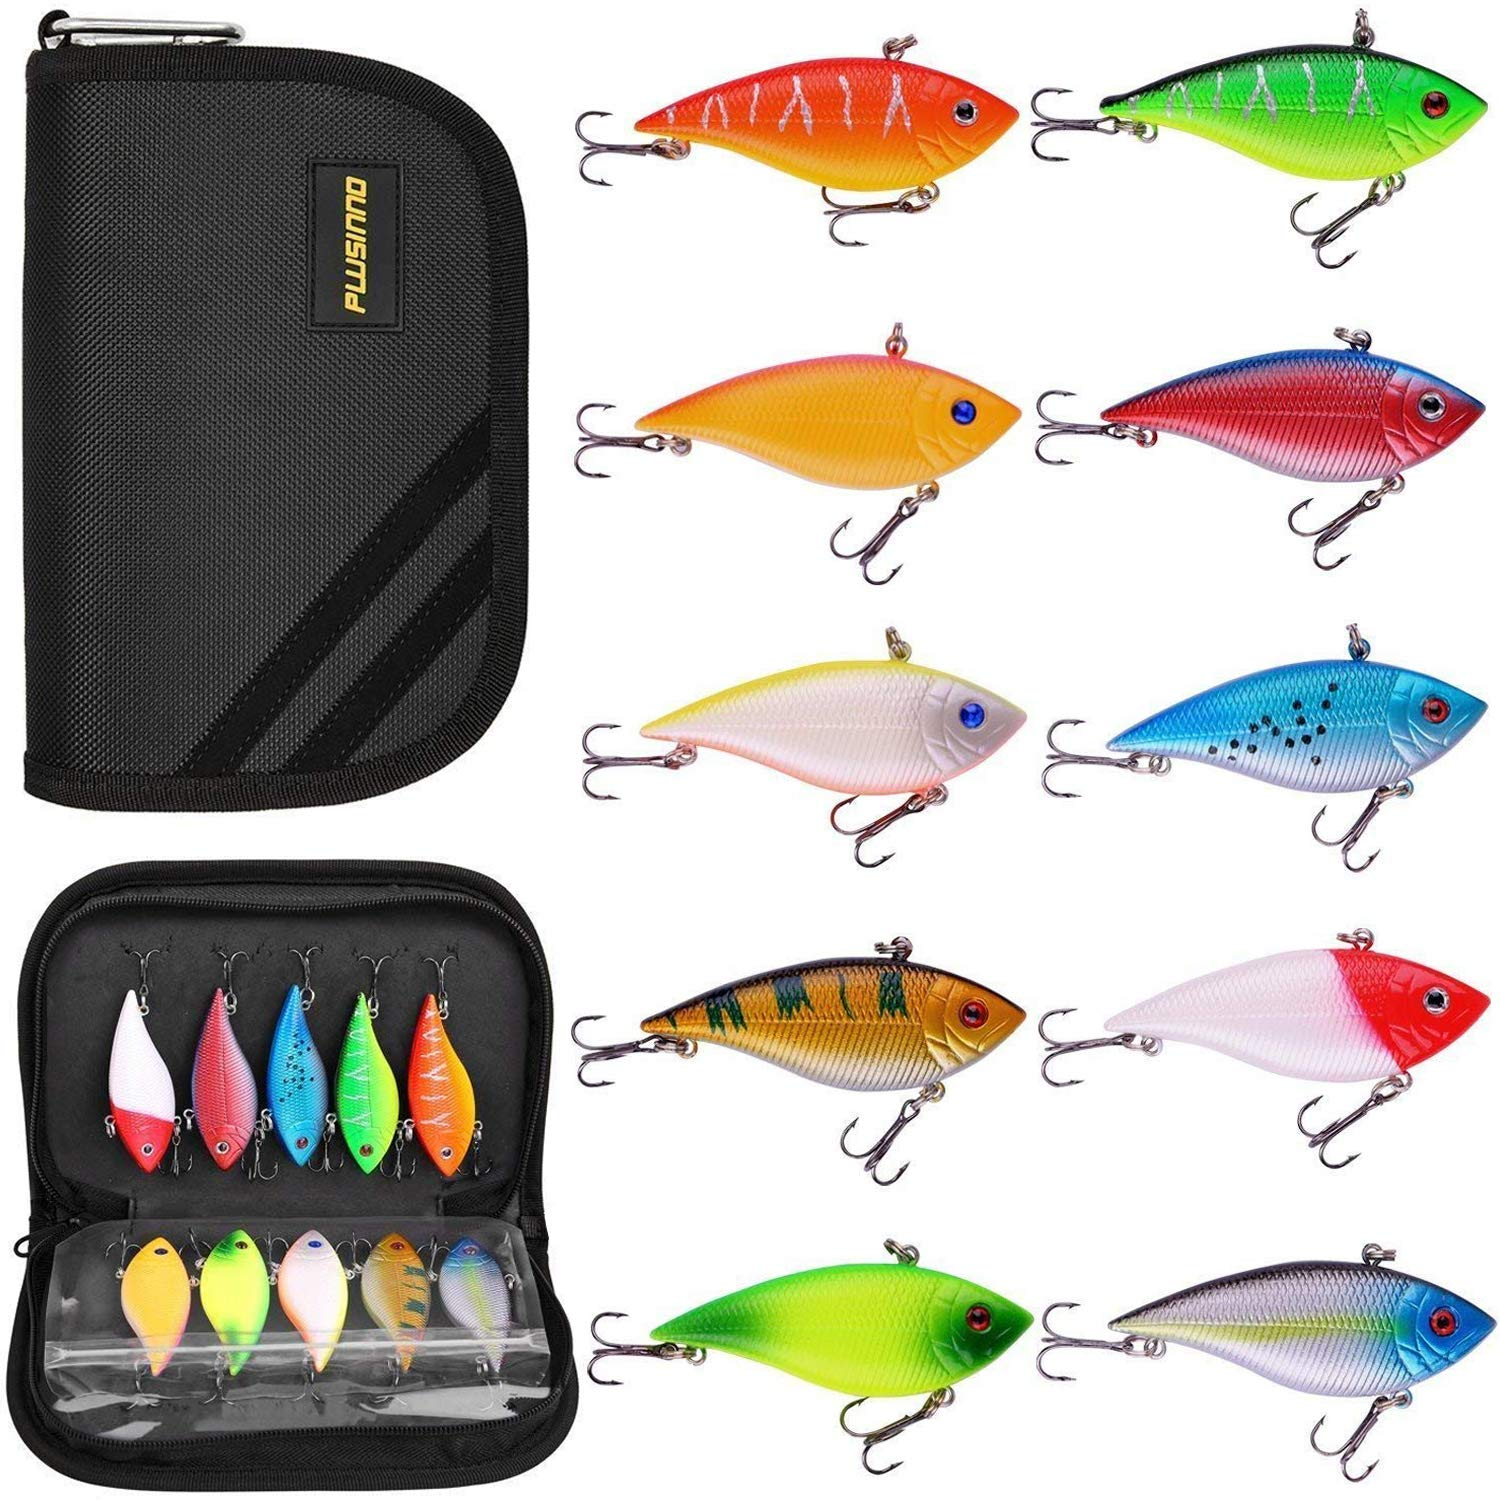 PLUSINNO Fishing Lures, 10 Pack Hard Baits Minnow VIB Lure Crankbait Kit with Free Carry Bag for Bass Trout Walleye Redfish by PLUSINNO